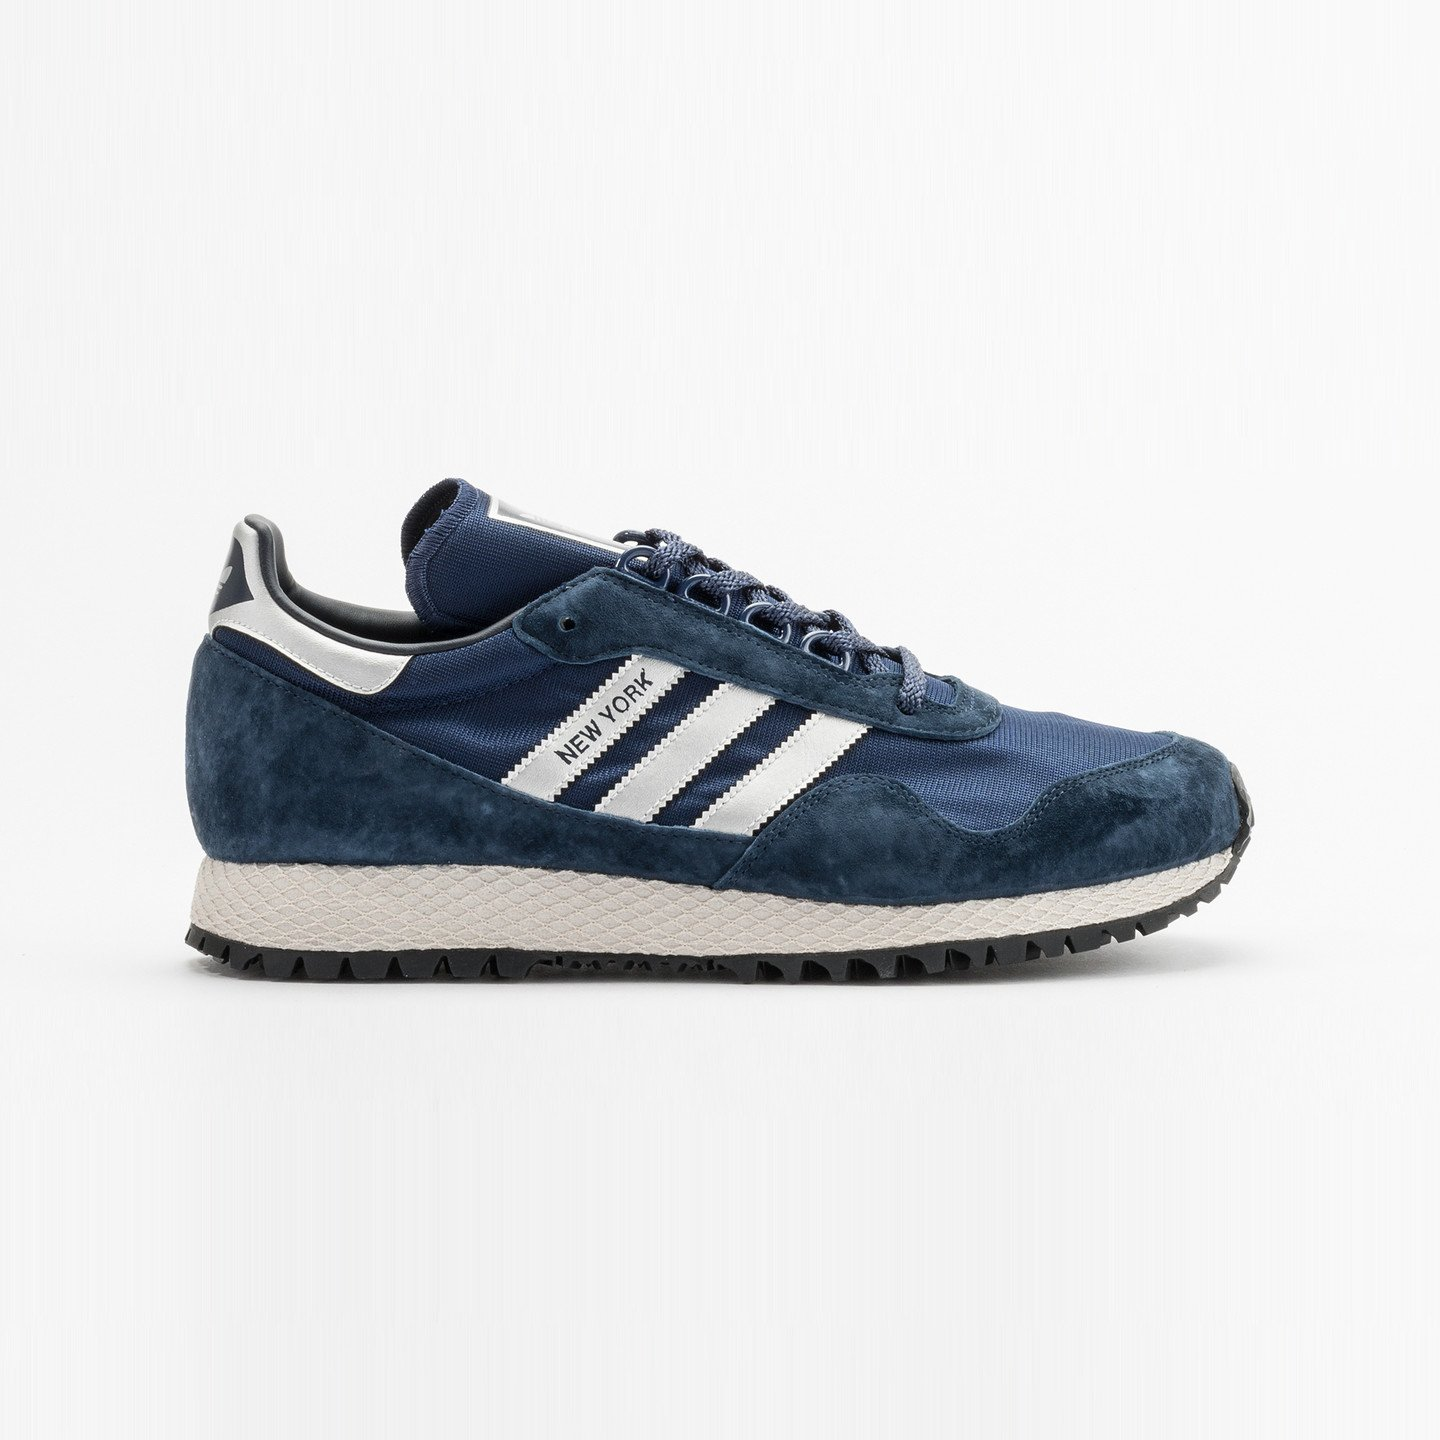 Adidas New York Collegiate Navy / Metallic Silver BB1188-42